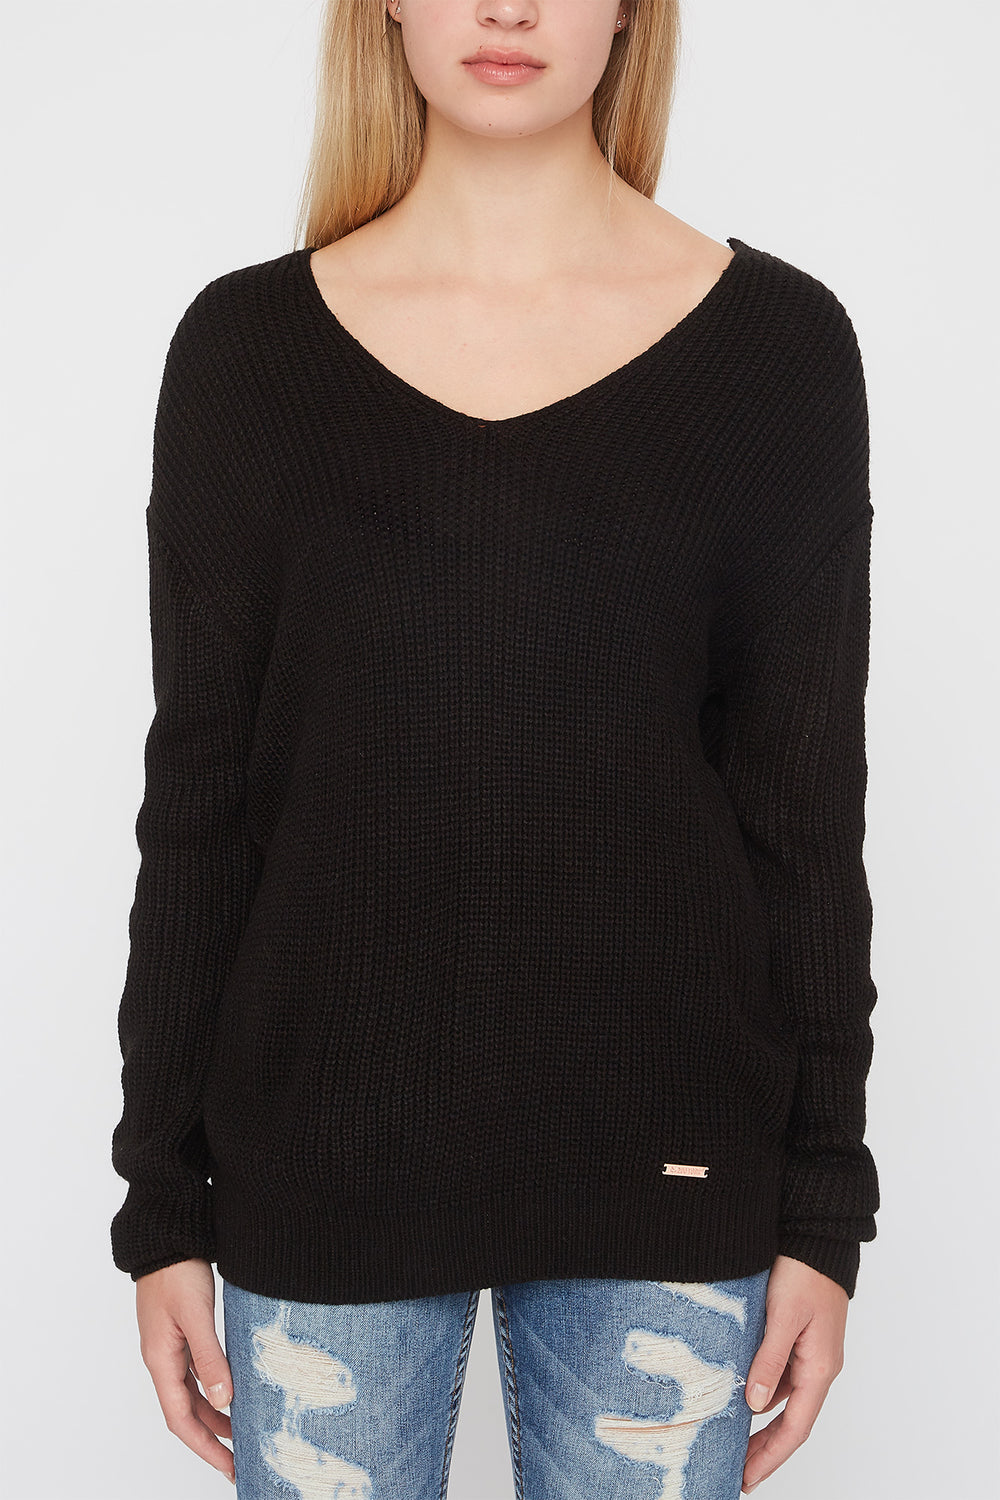 Zoo York Womens Knit Back Knot Sweater Black